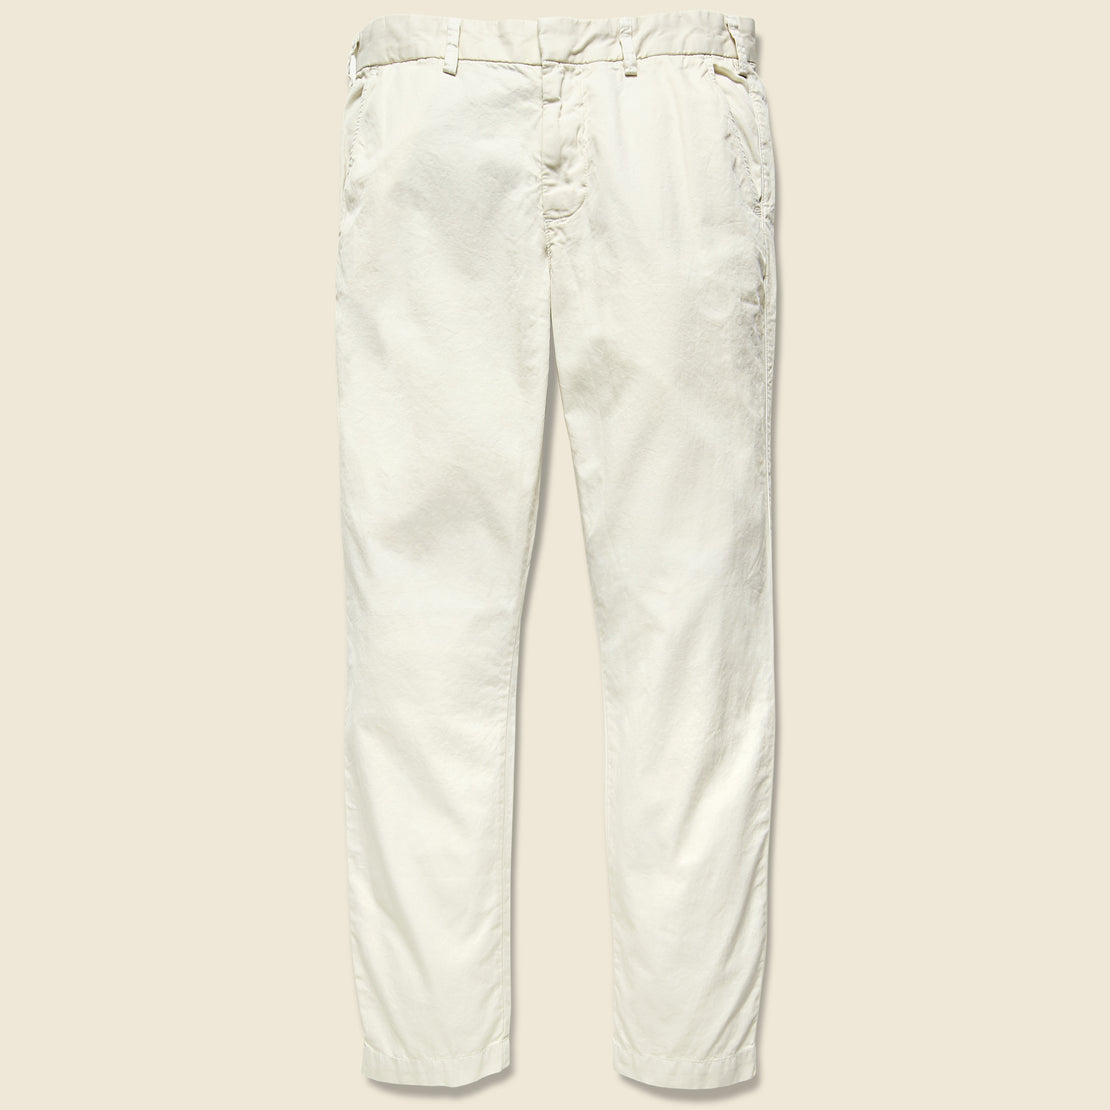 Save Khaki Light Twill Trouser - Stone